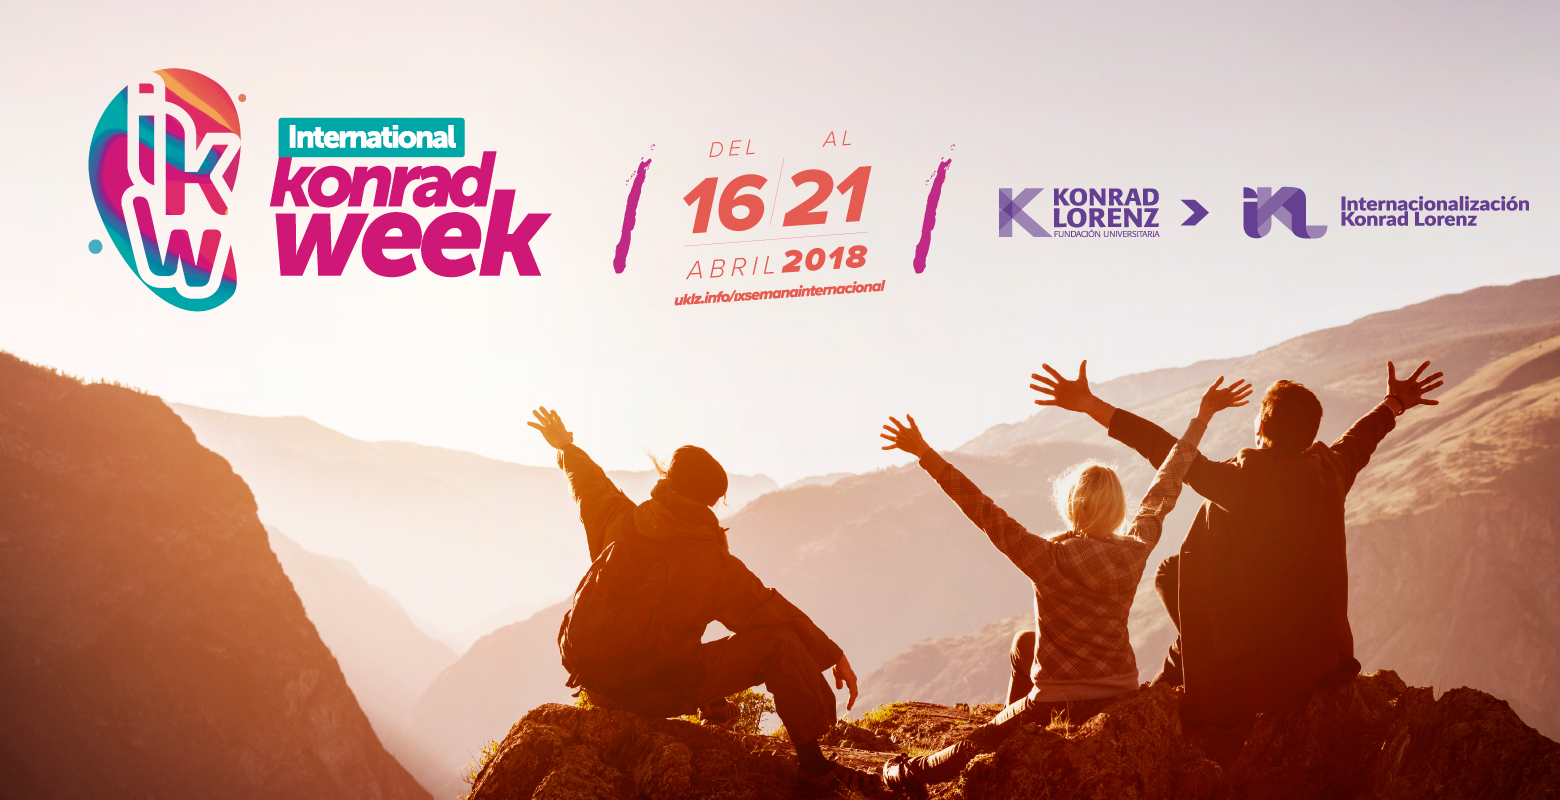 IX International Konrad Week